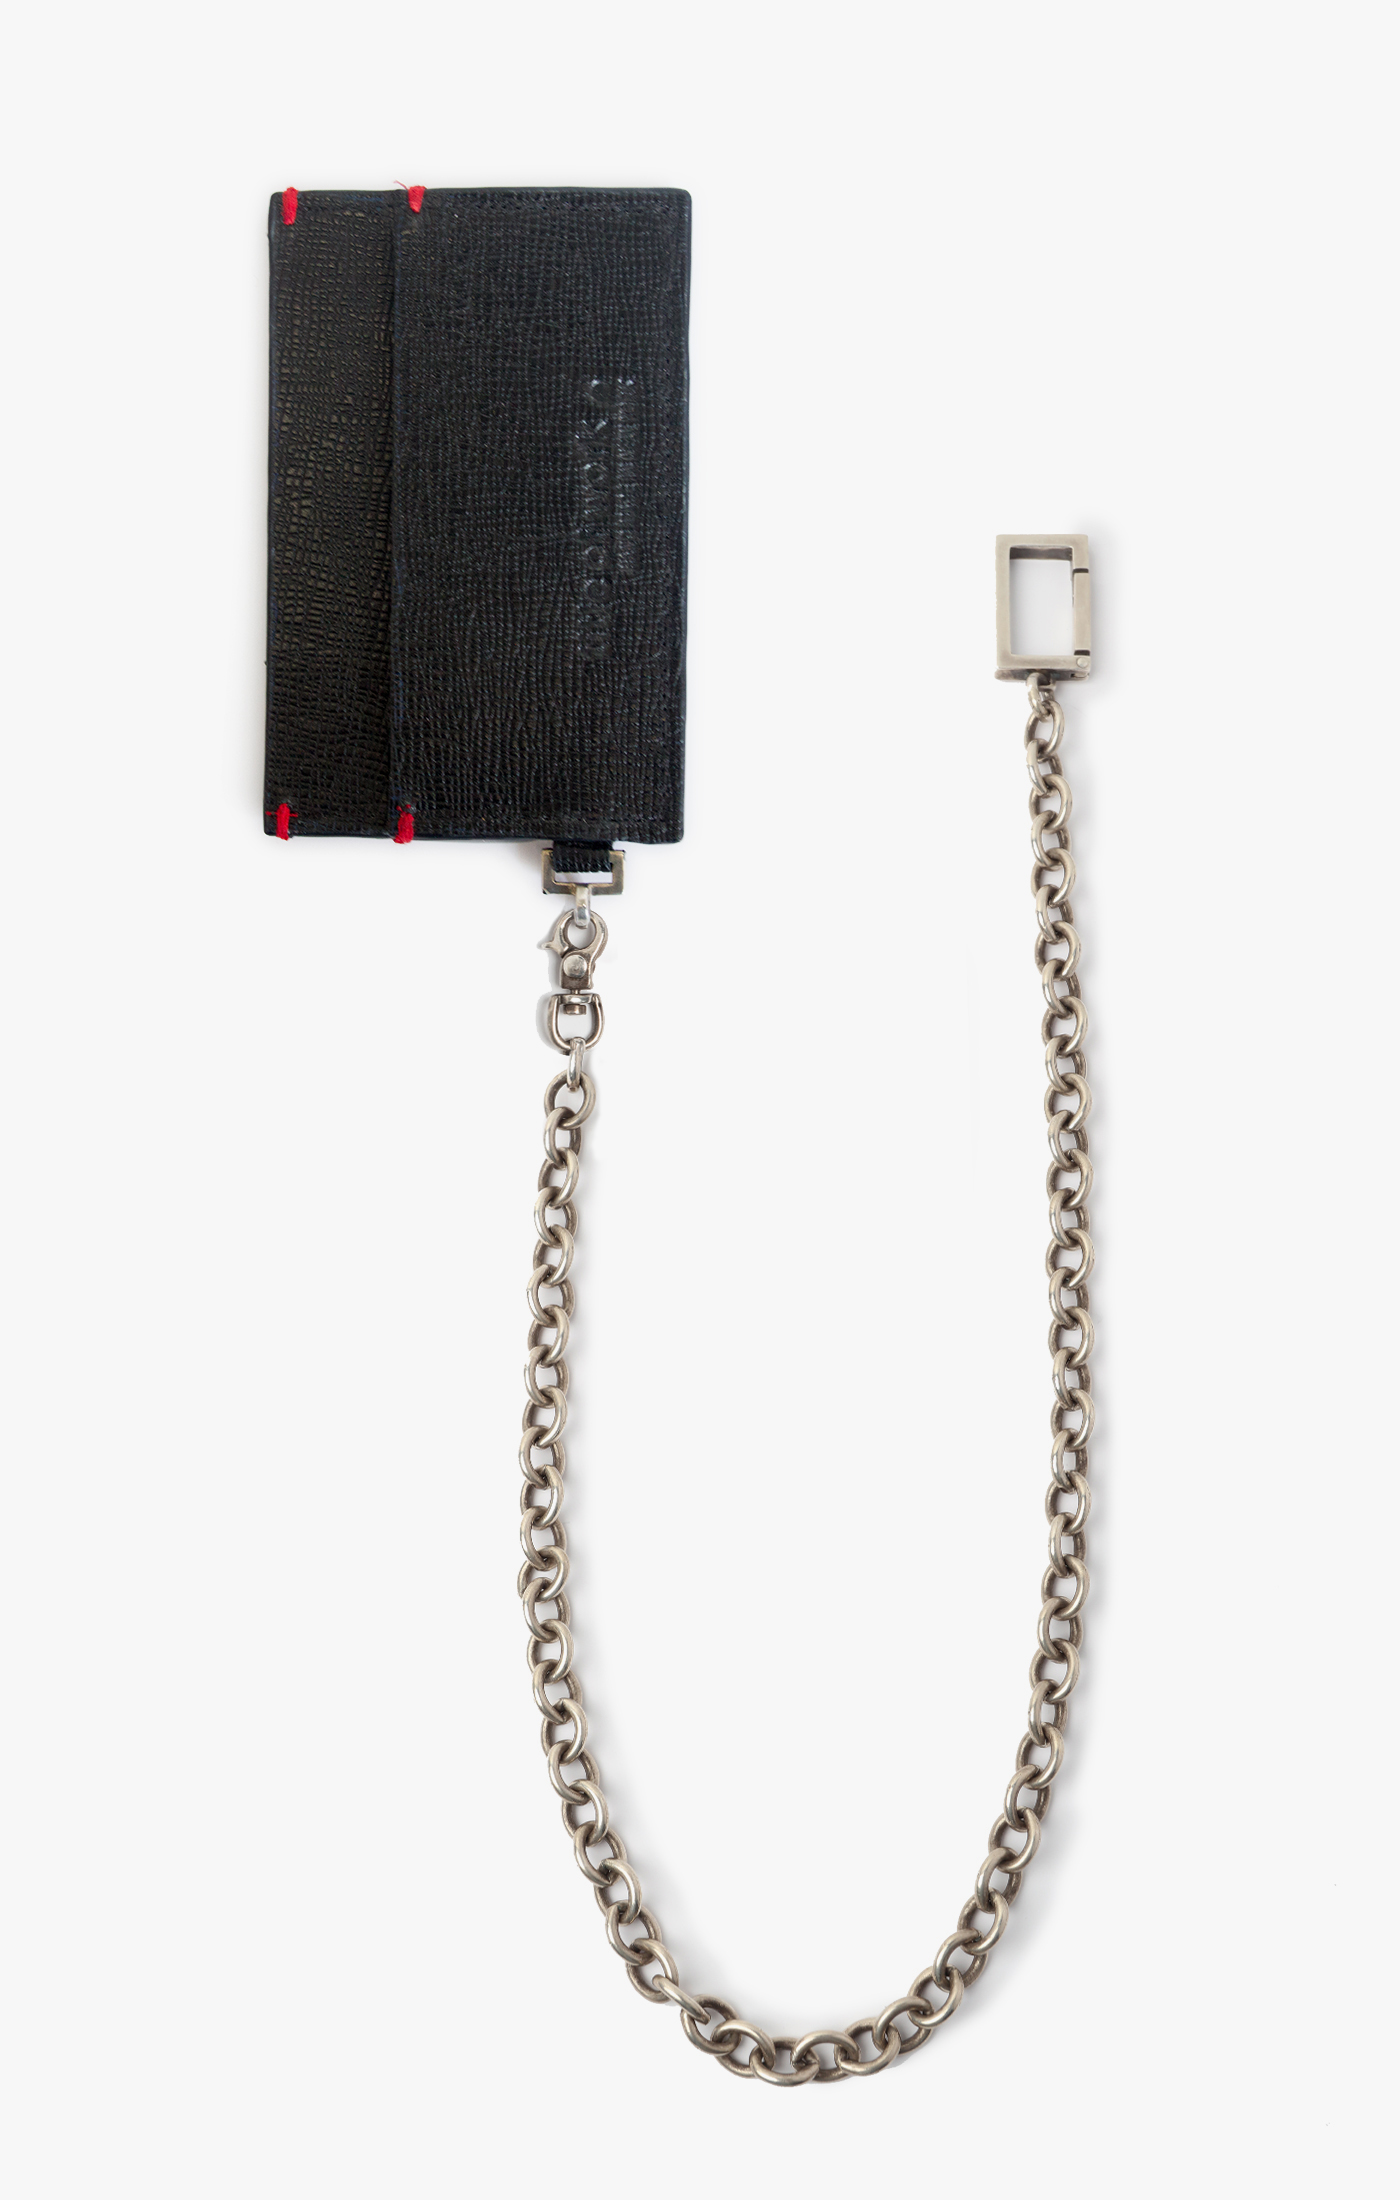 Image of 3 Pocket Card Holder w/ Cable Chain